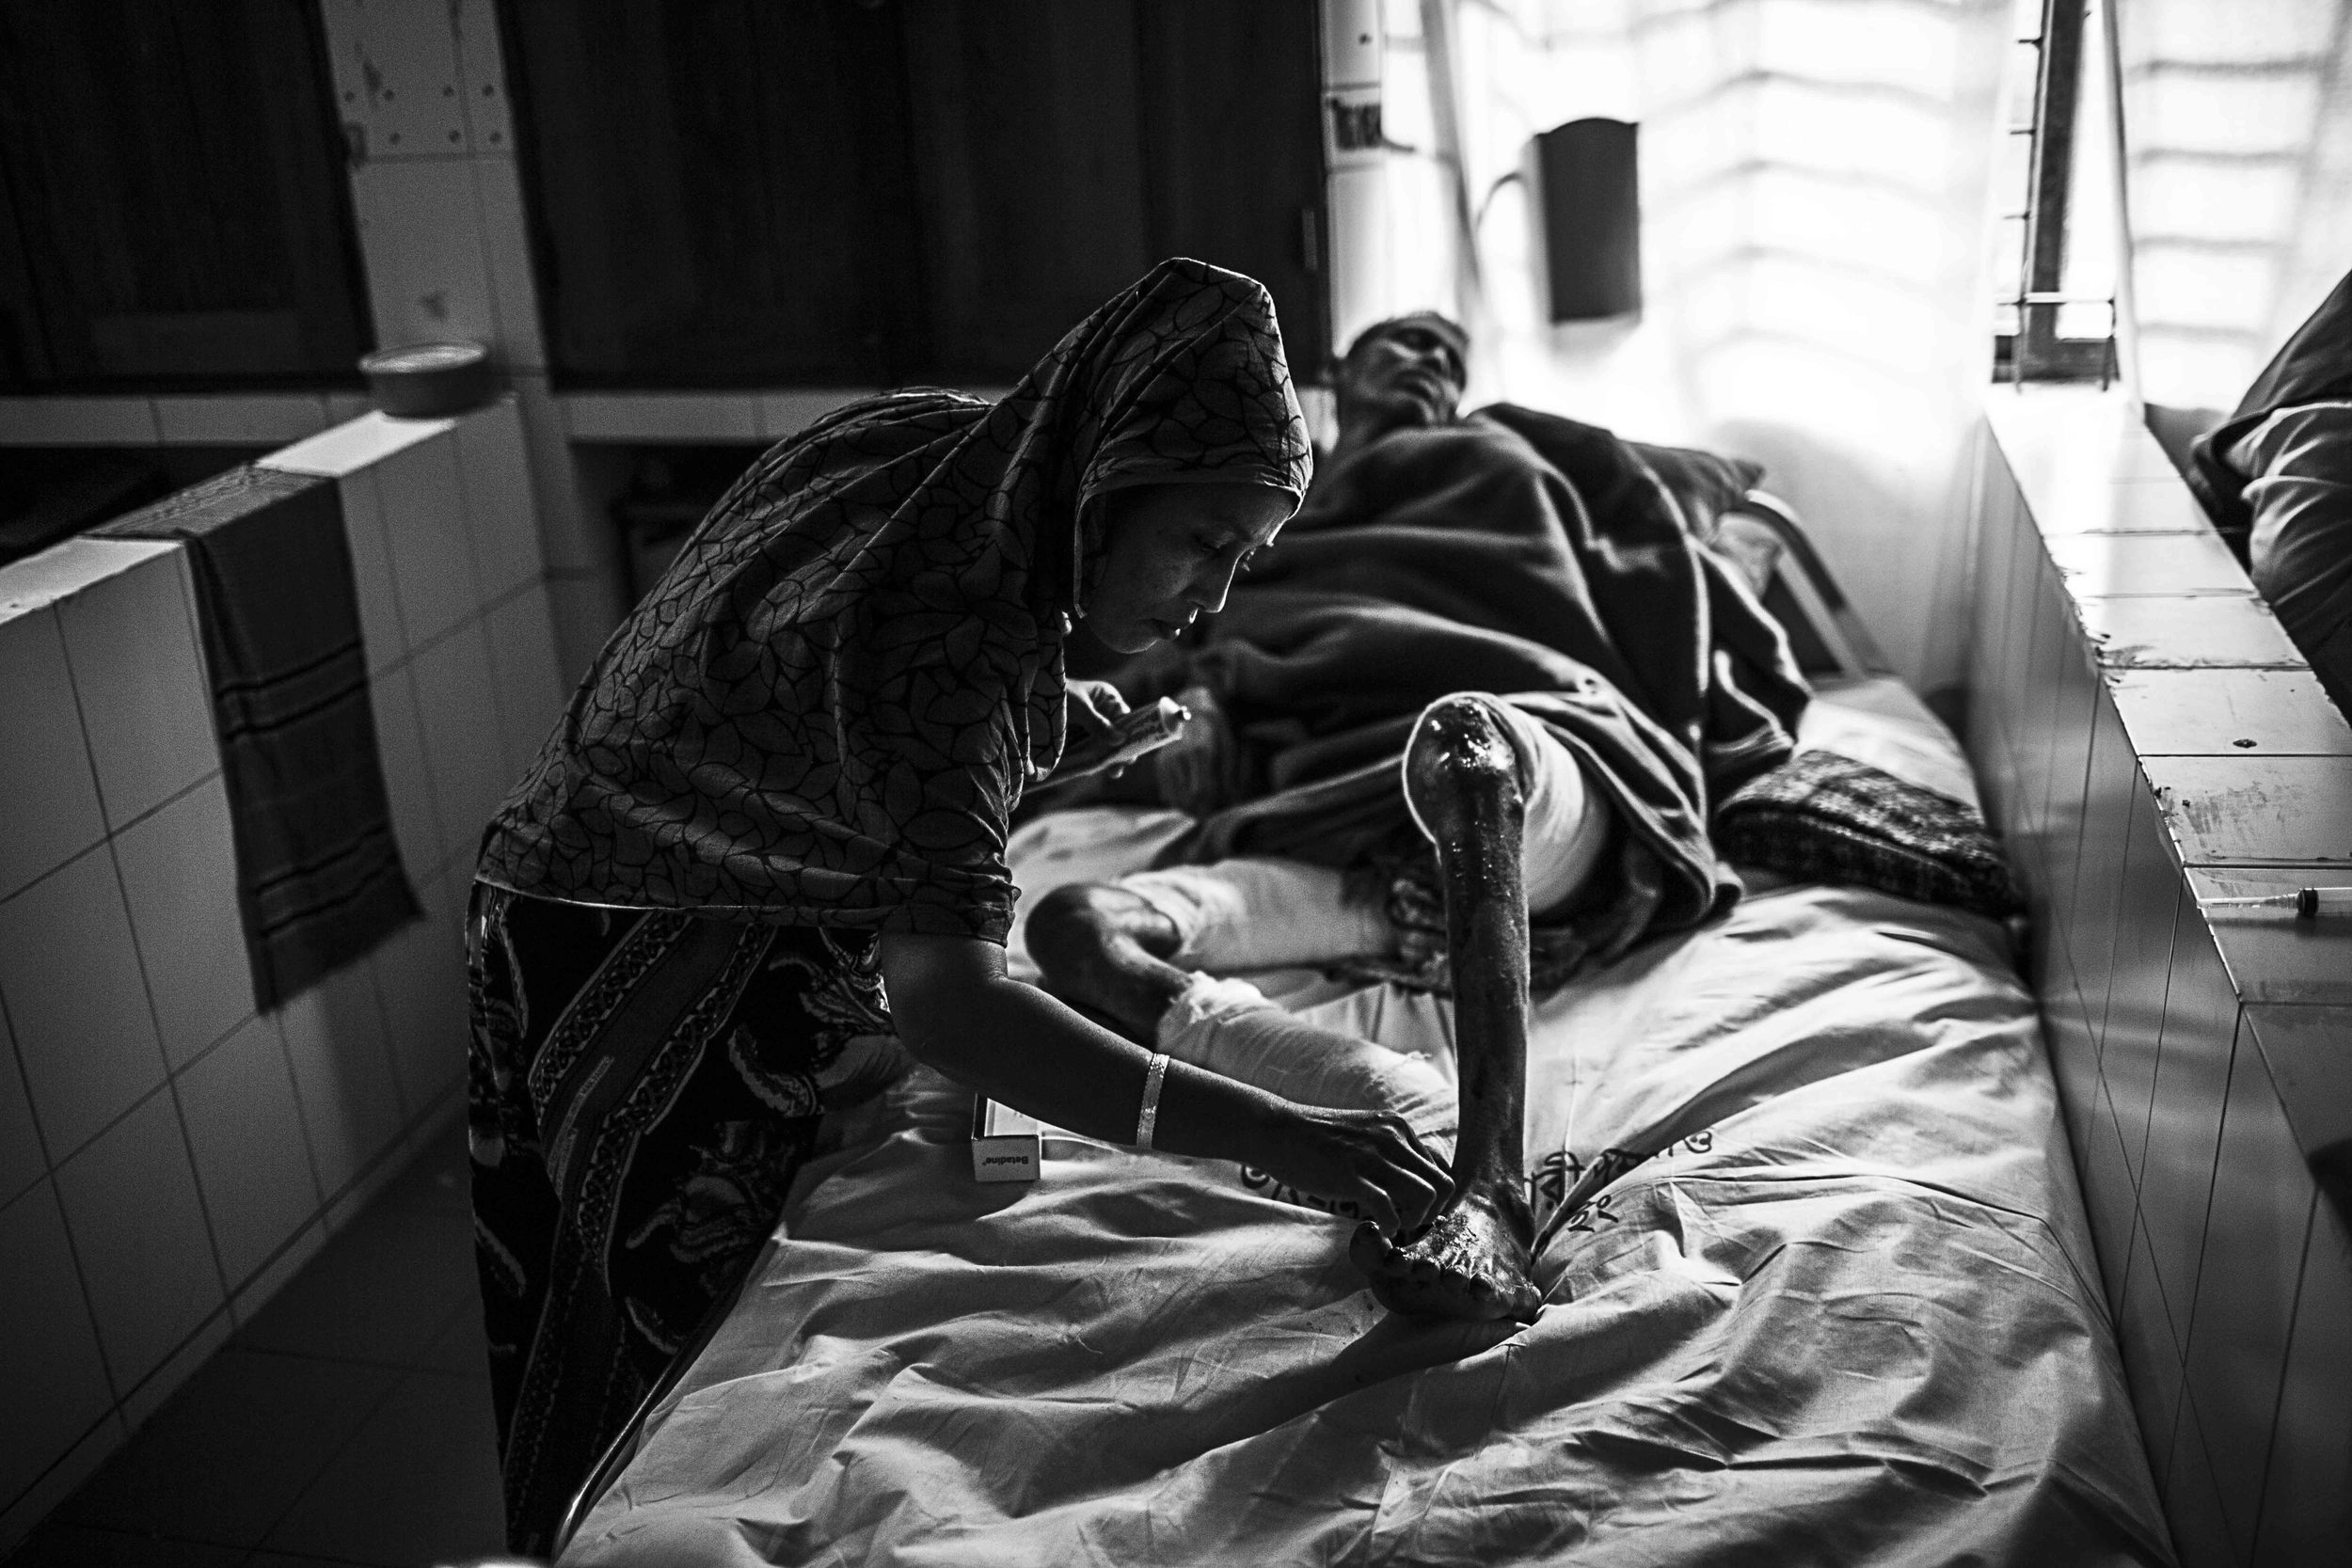 Nasima Begum tends to her husband, Mohammad. Some duties are left to family members instead of nurses.